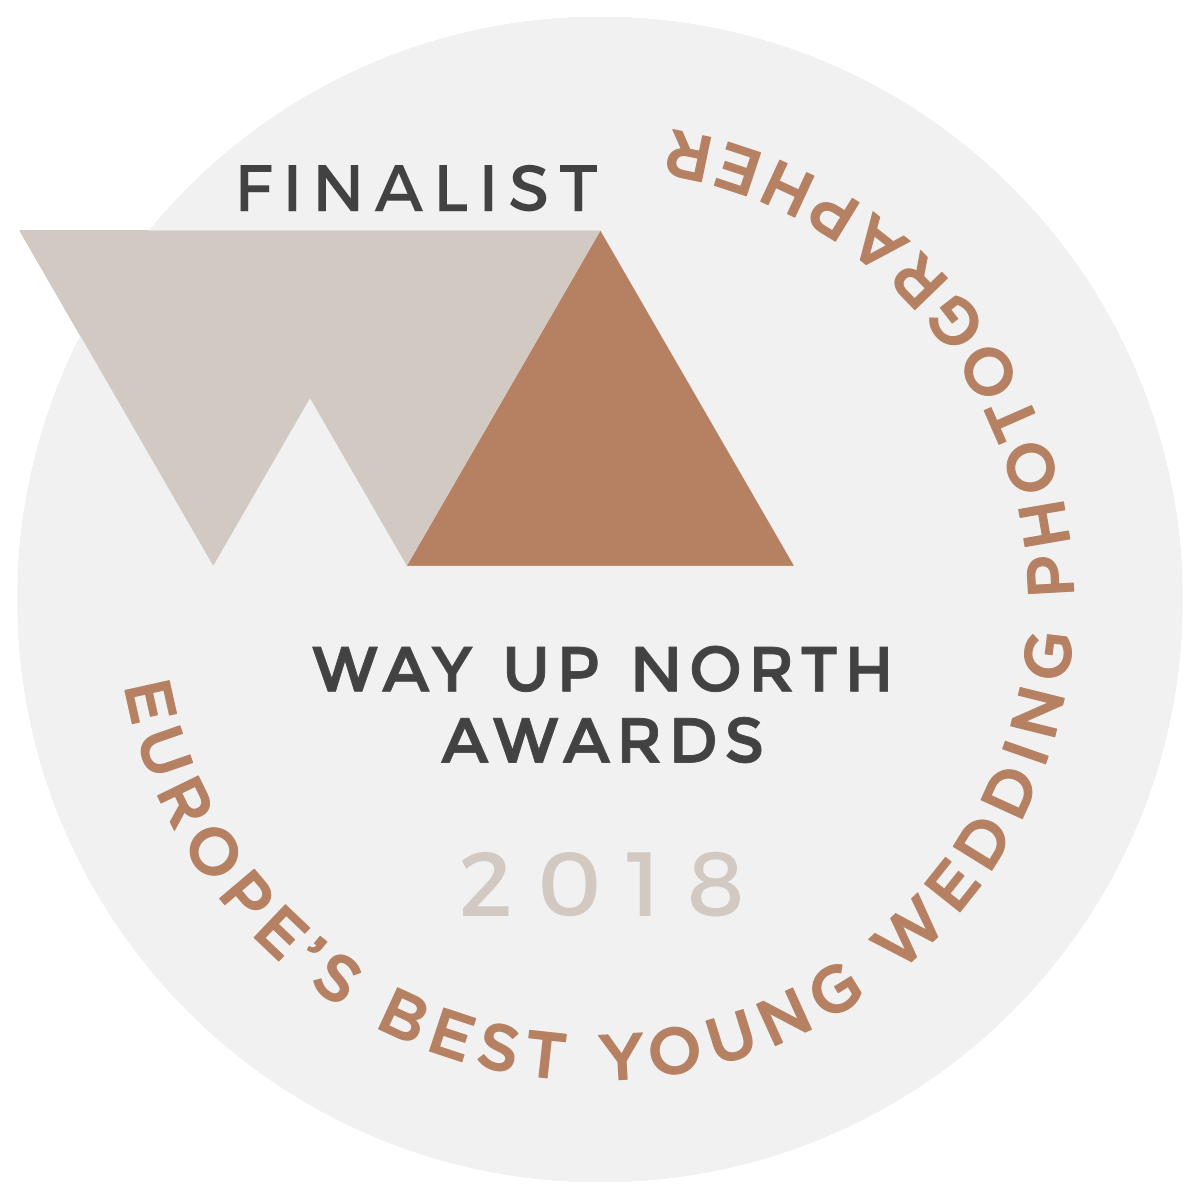 Way Up North Awards 'Europes Best Young Wedding Photographer' Finalist 2018